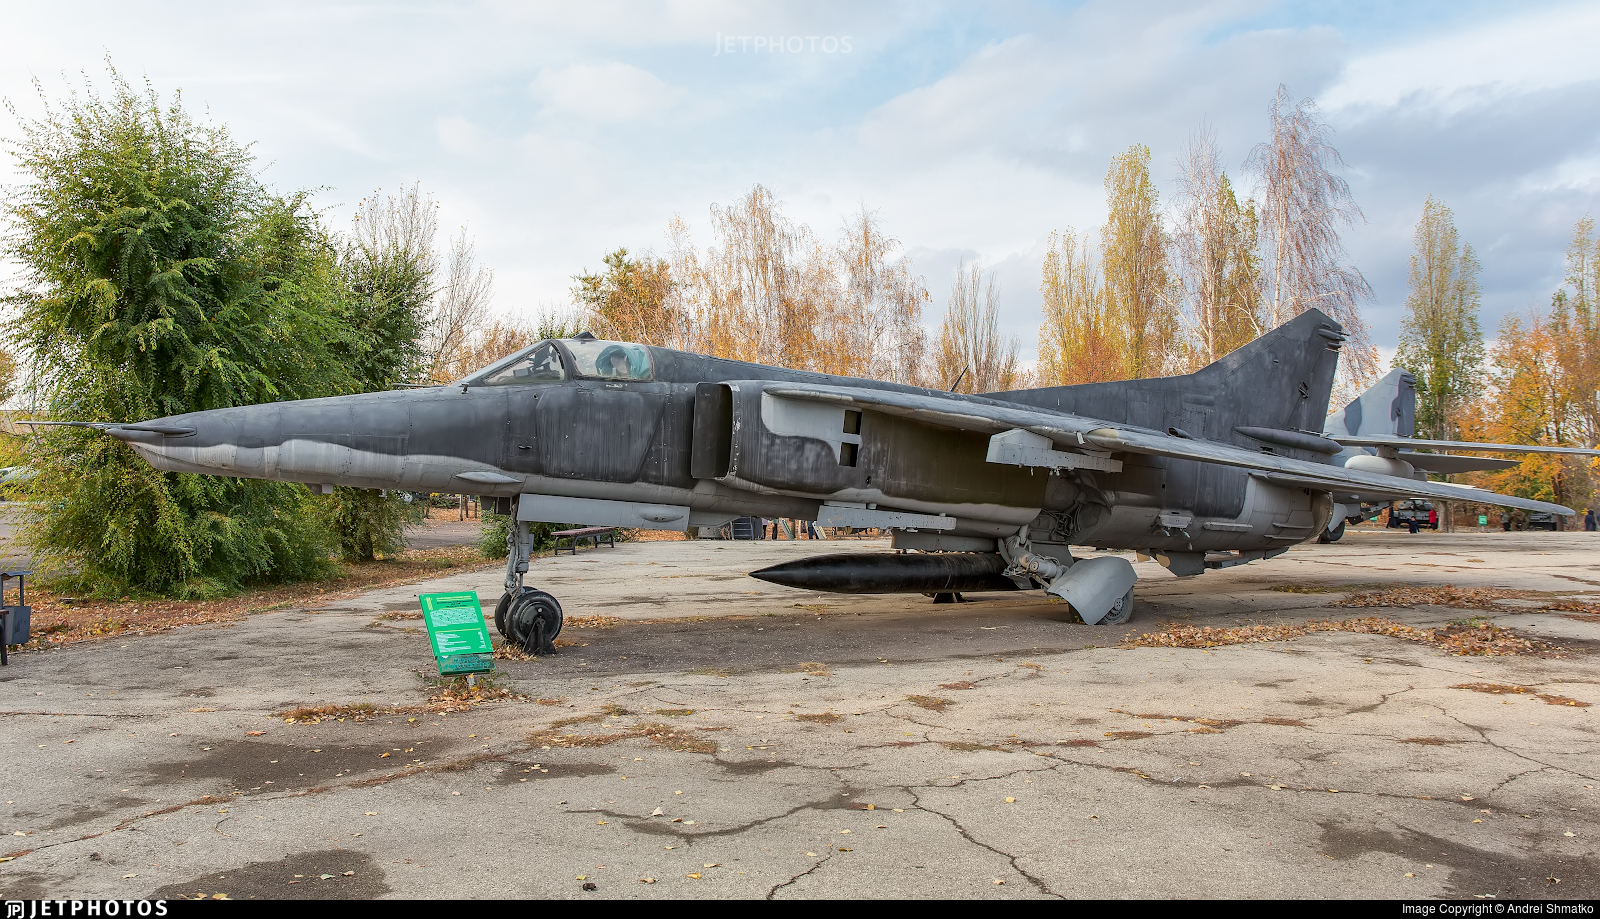 28 - Mikoyan-Gurevich MiG-27M Flogger-J - Russia - Air Force